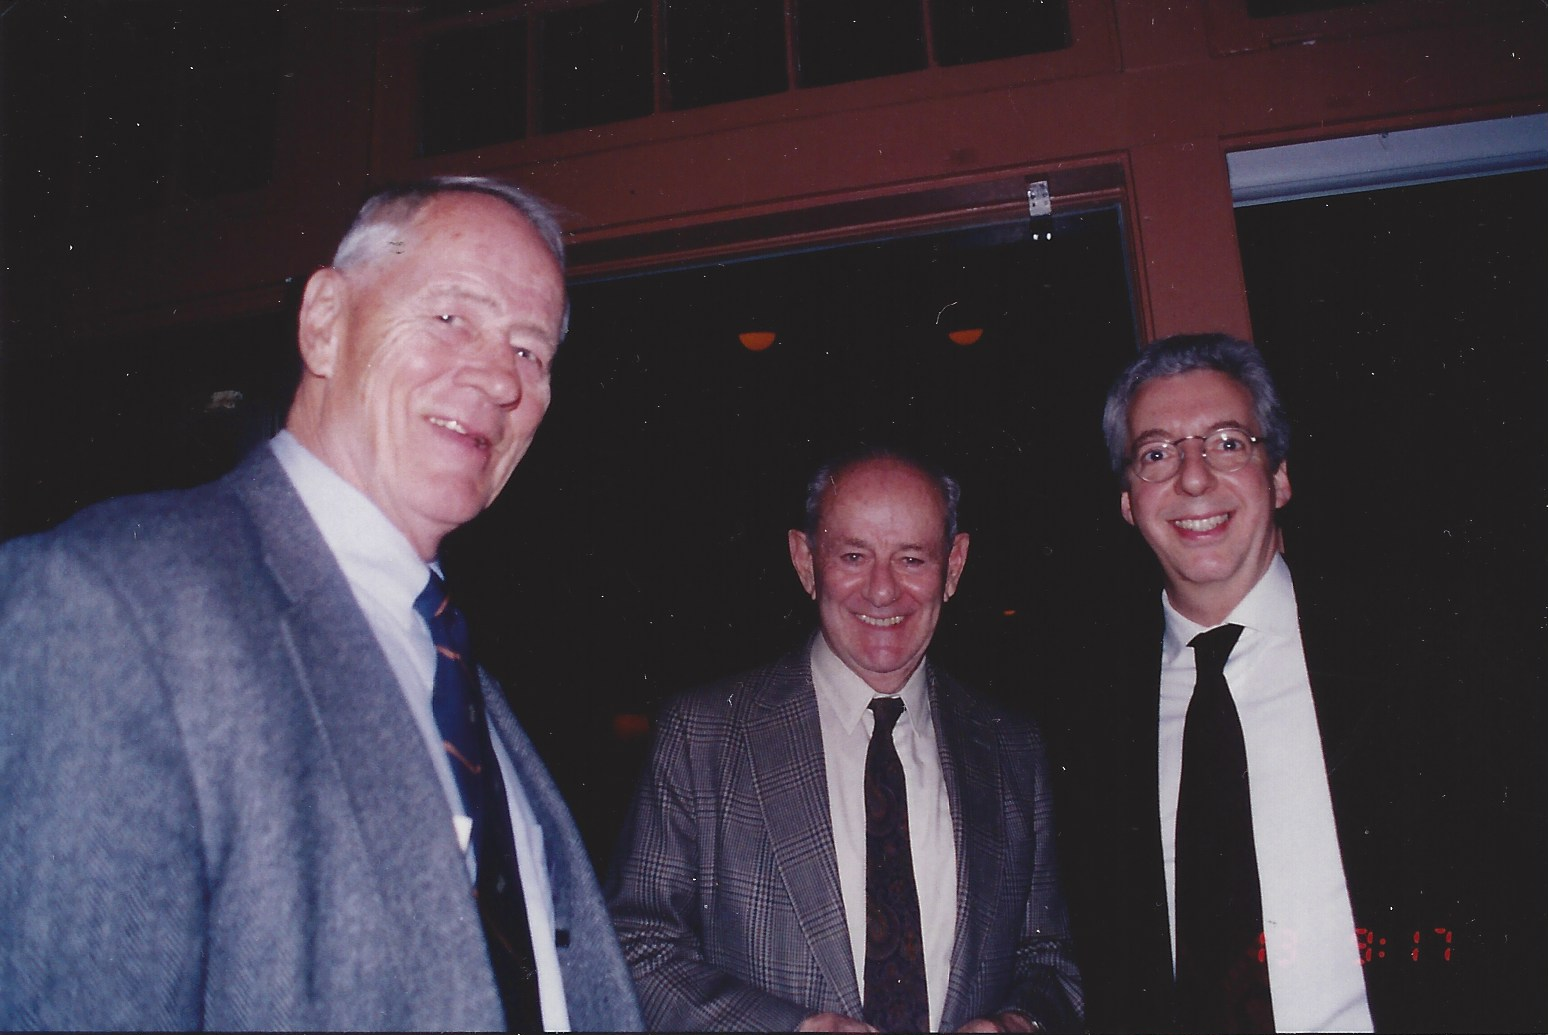 Stephen Ambrose, Walter Rosenblum and Dan Allentuck at the D-Day Premiere